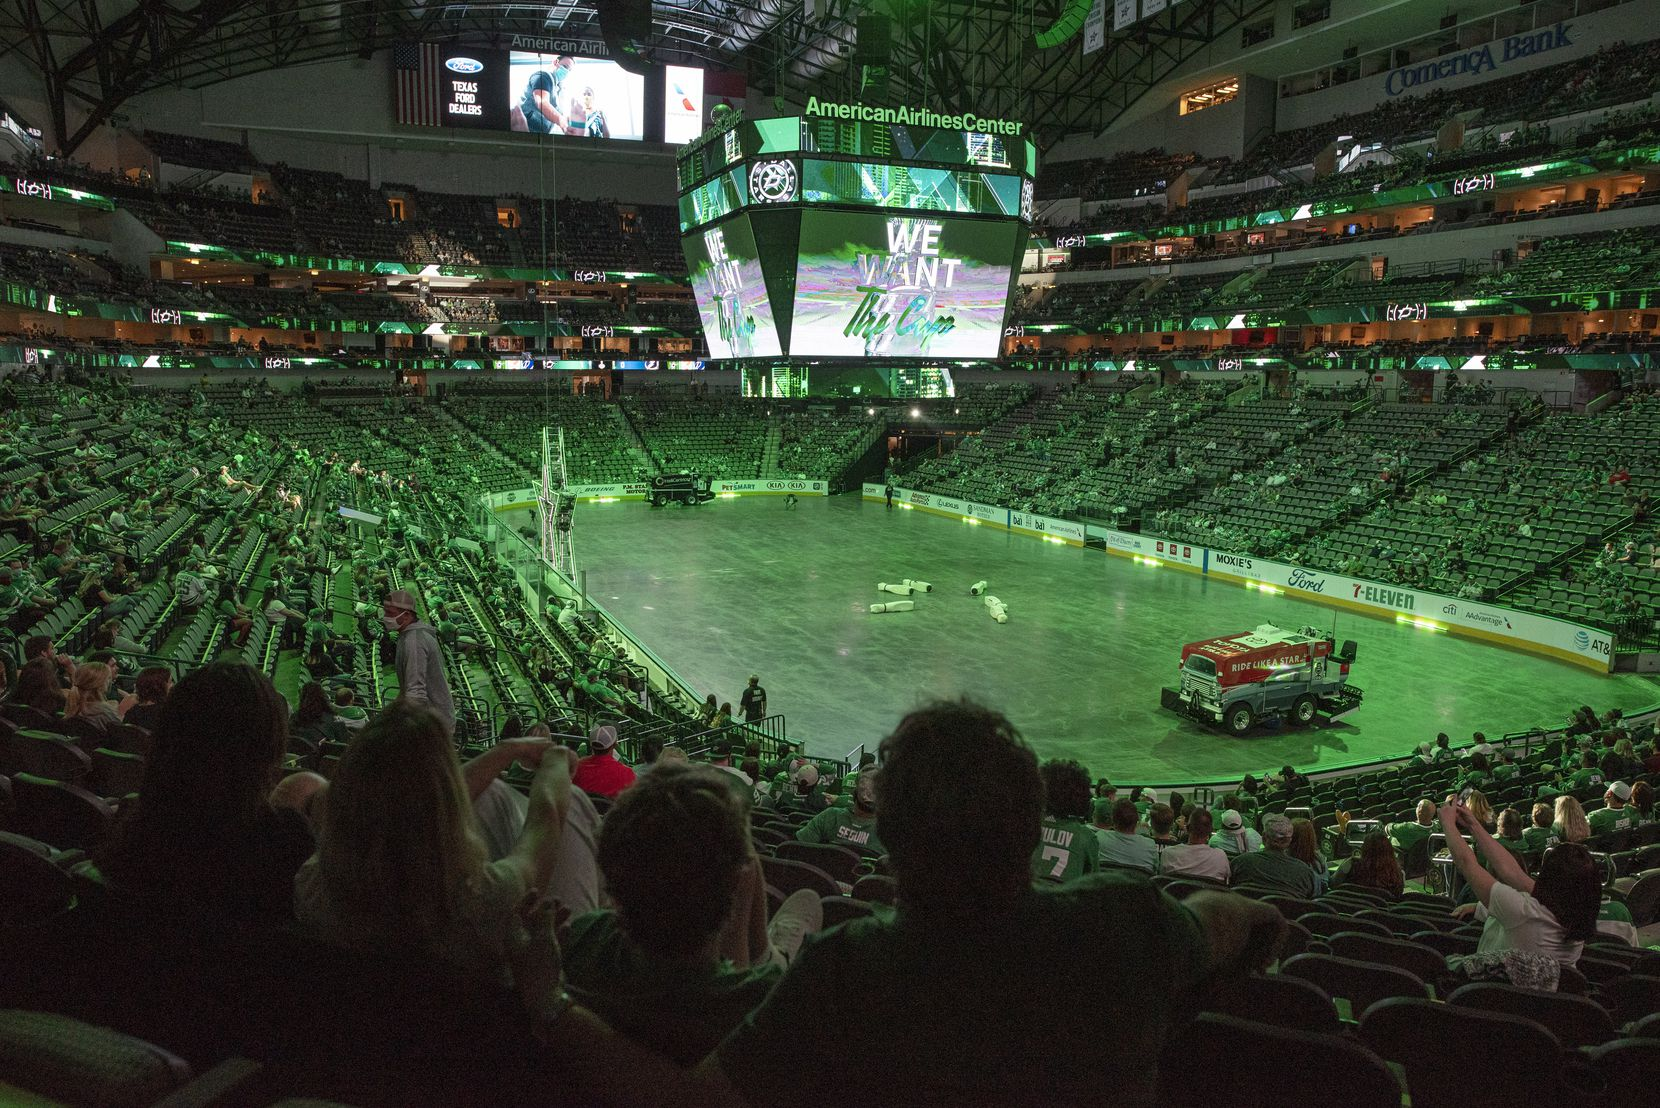 Hockey fans watch the Dallas Stars versus the Tampa Bay Lightning during a watch party at the American Airlines Center for game 1 of the Stanley Cup Final, Saturday, on Sept. 19, 2020. The Dallas Stars won game one 4-1.Ben Torres/Special Contributor